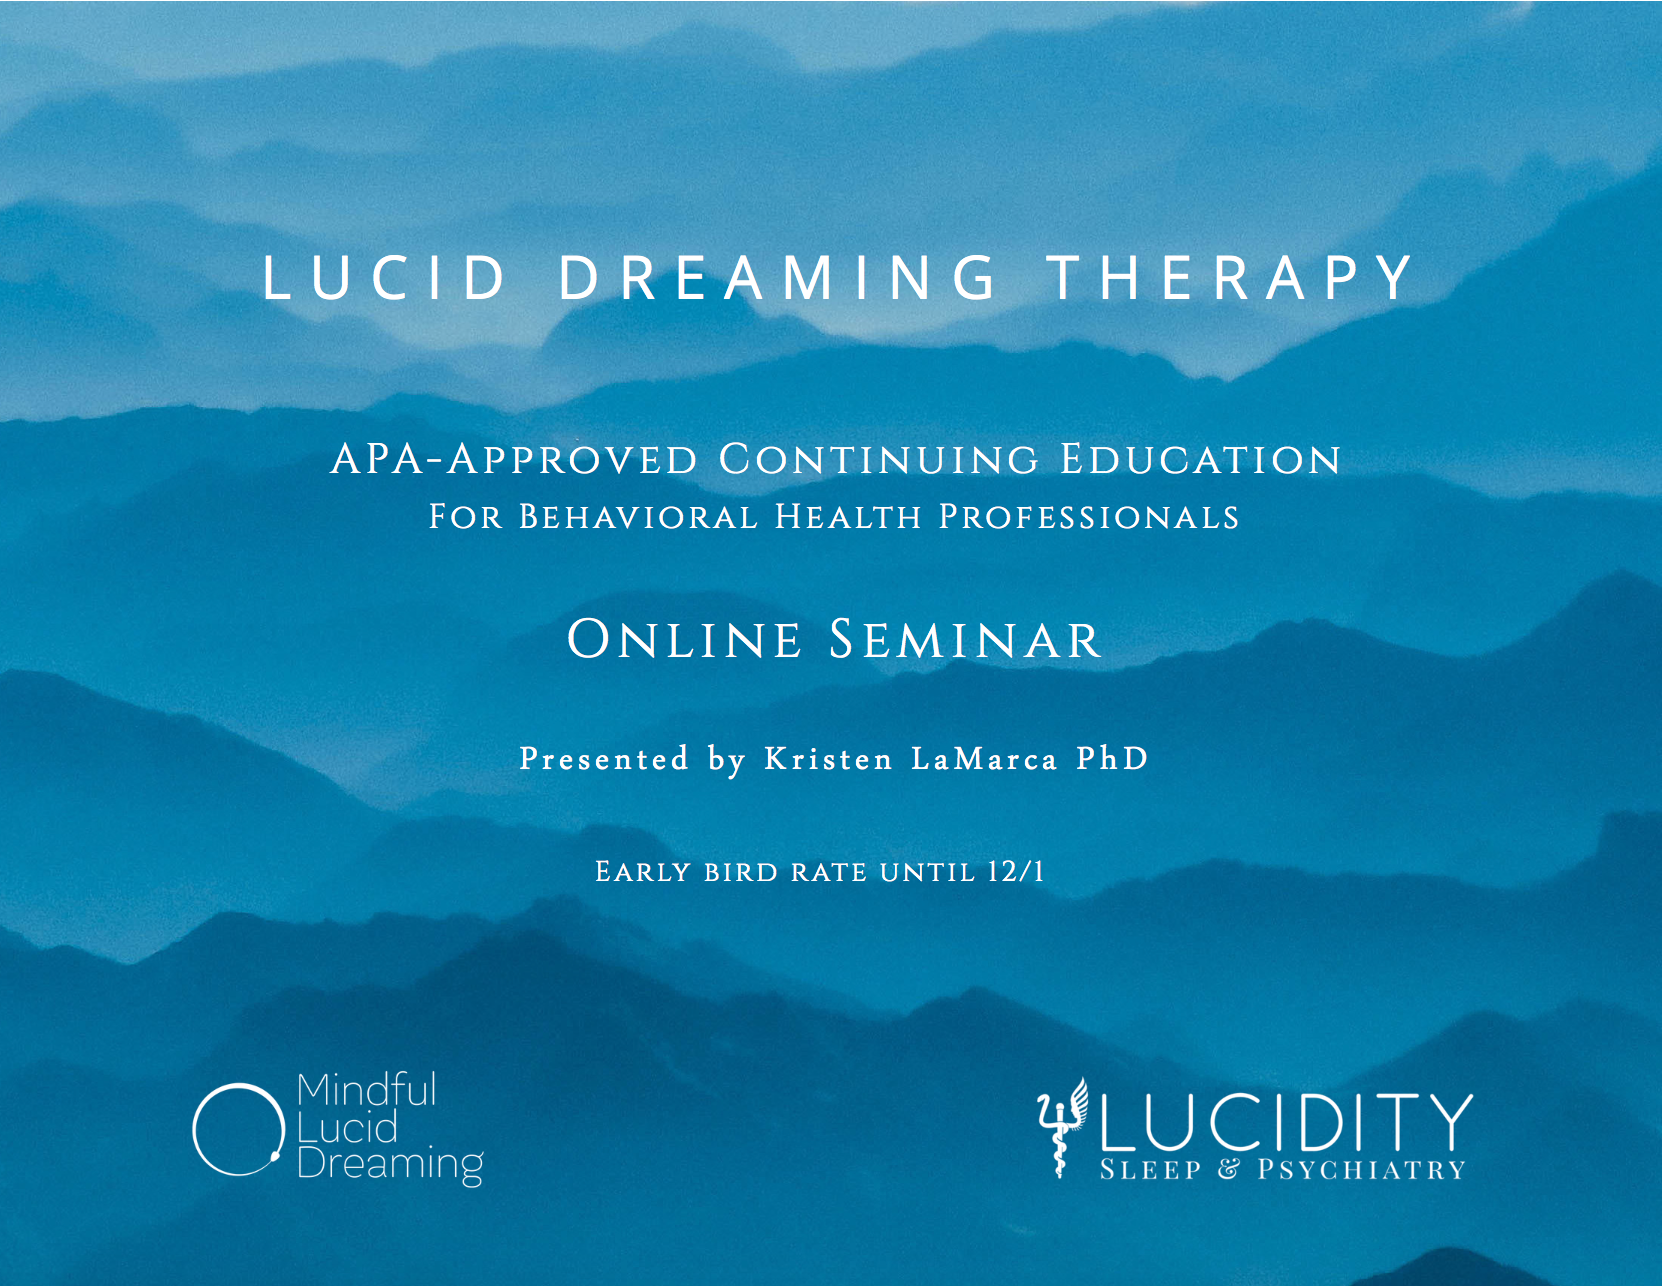 Lucid Dreaming Therapy APA-Approved Continuing Education (CE)